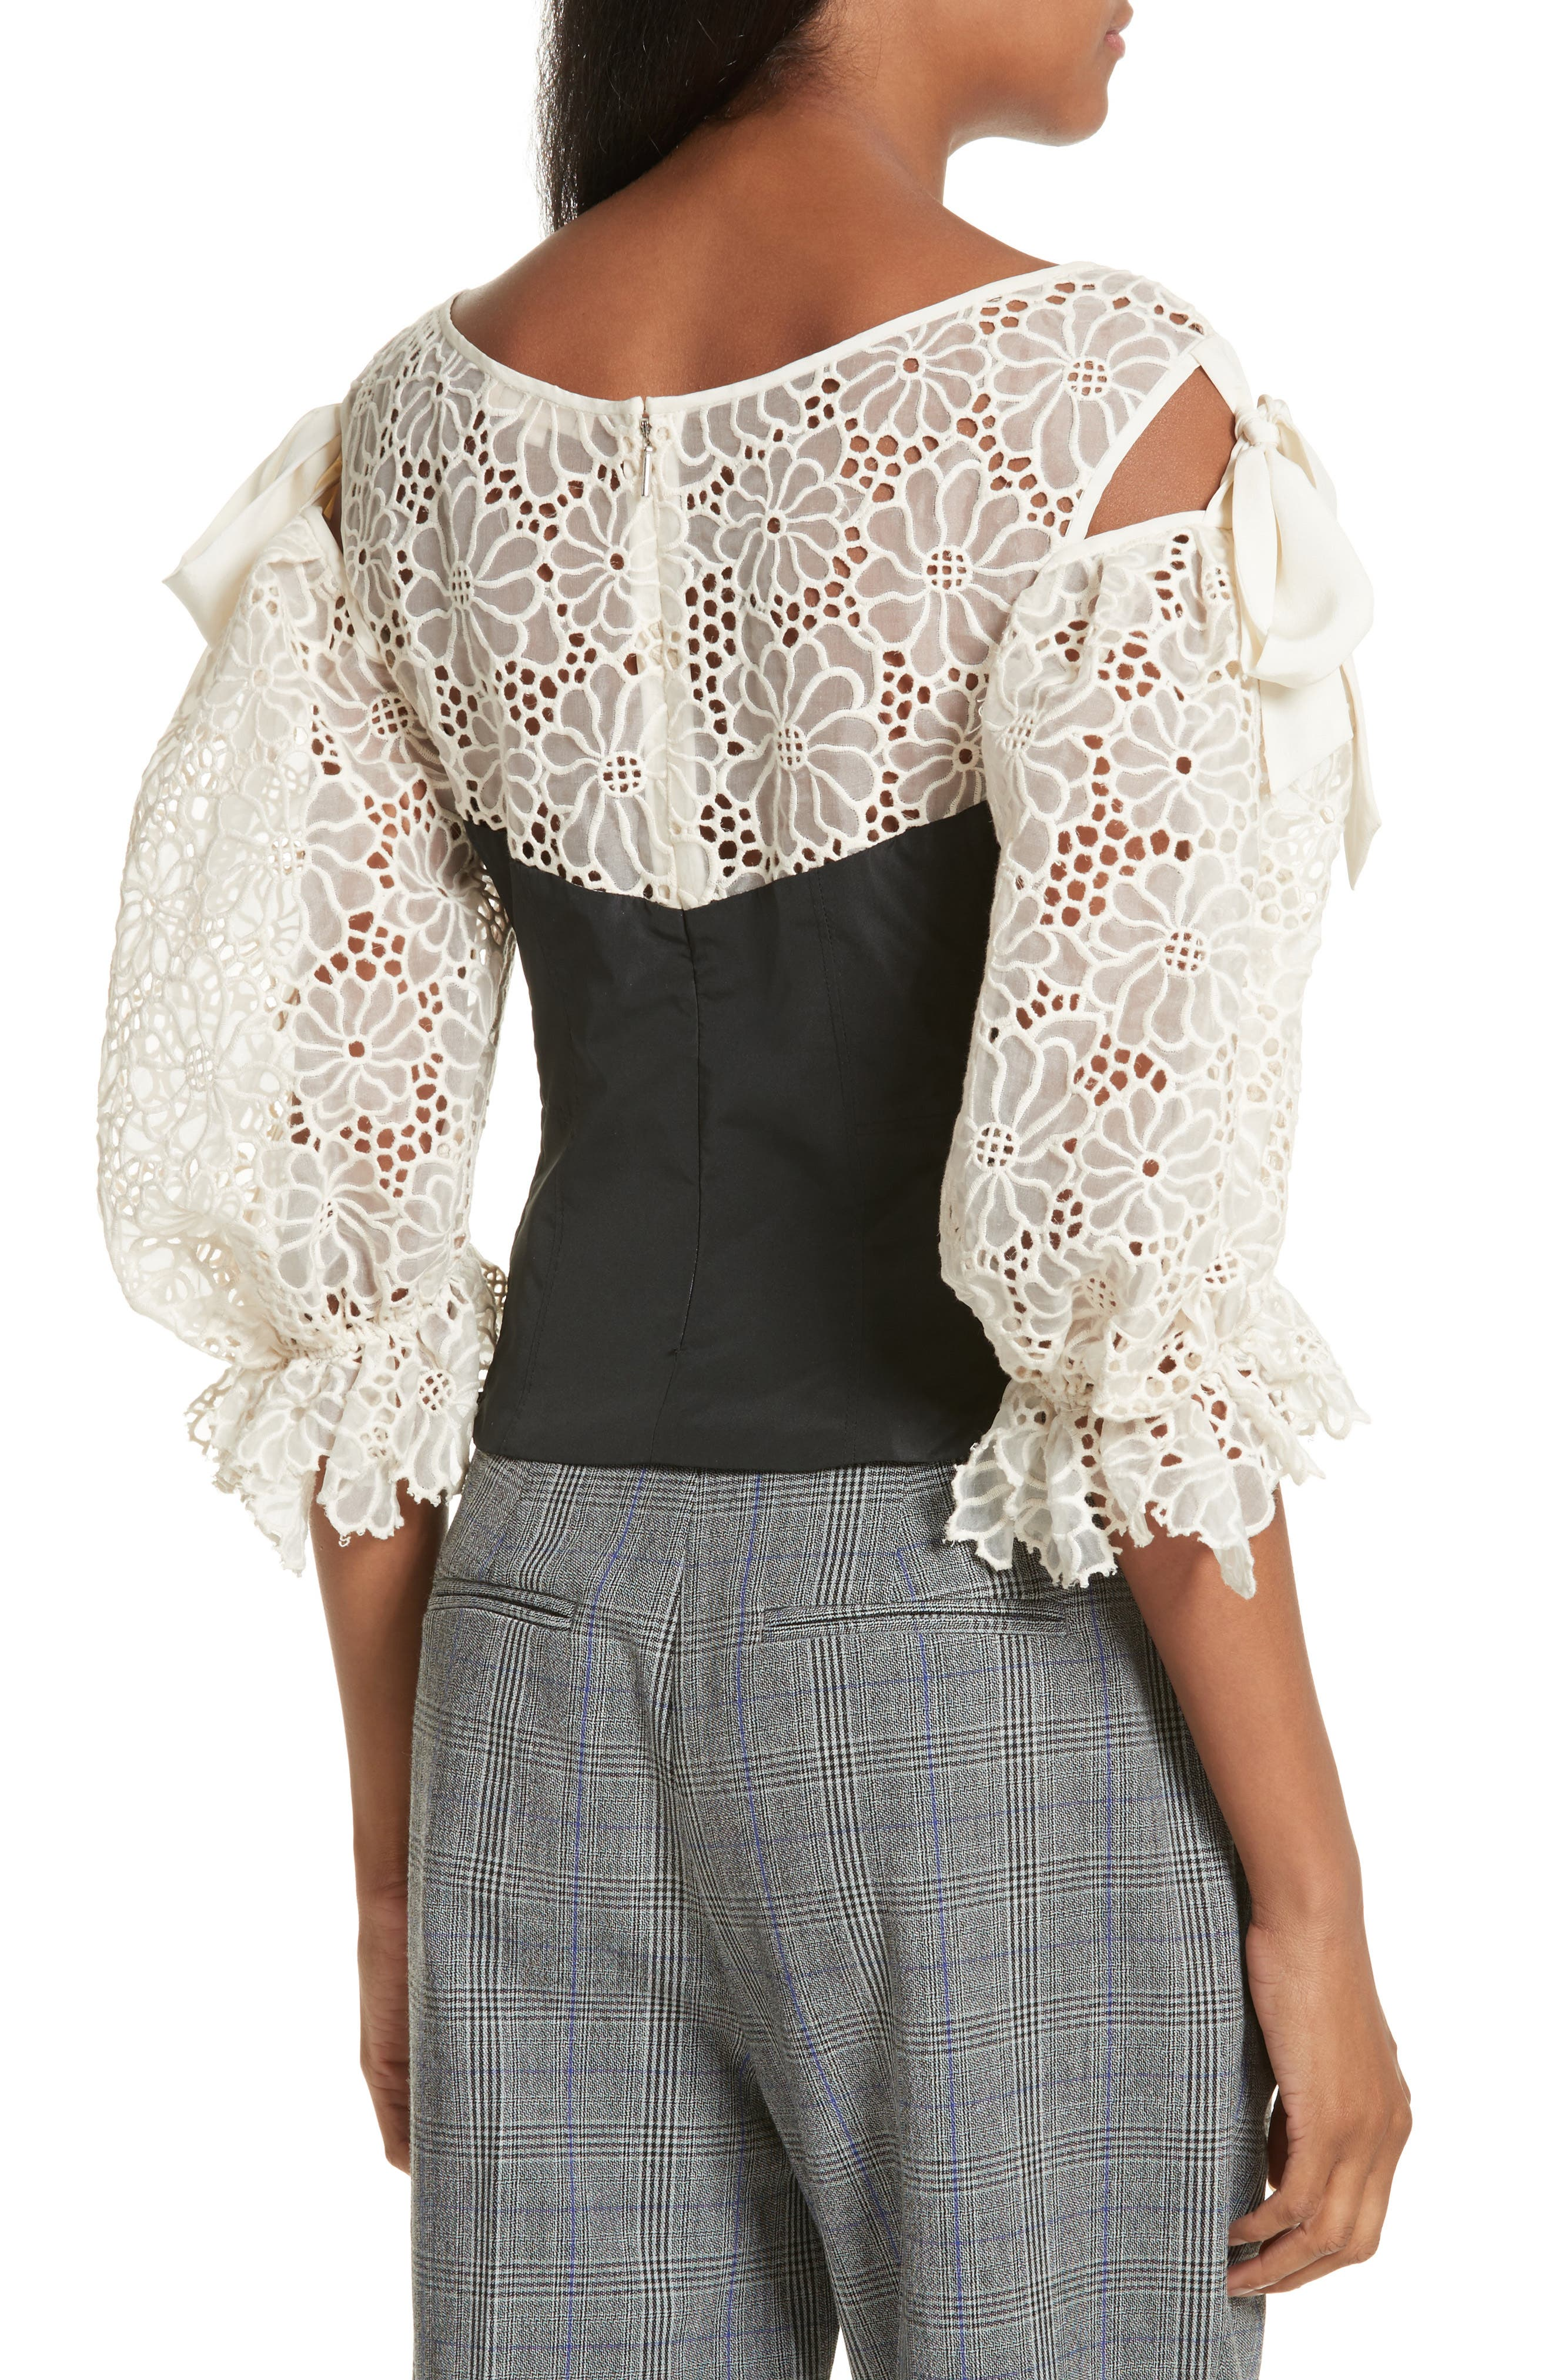 Malorie Embroidered Eyelet Top,                             Alternate thumbnail 2, color,                             114